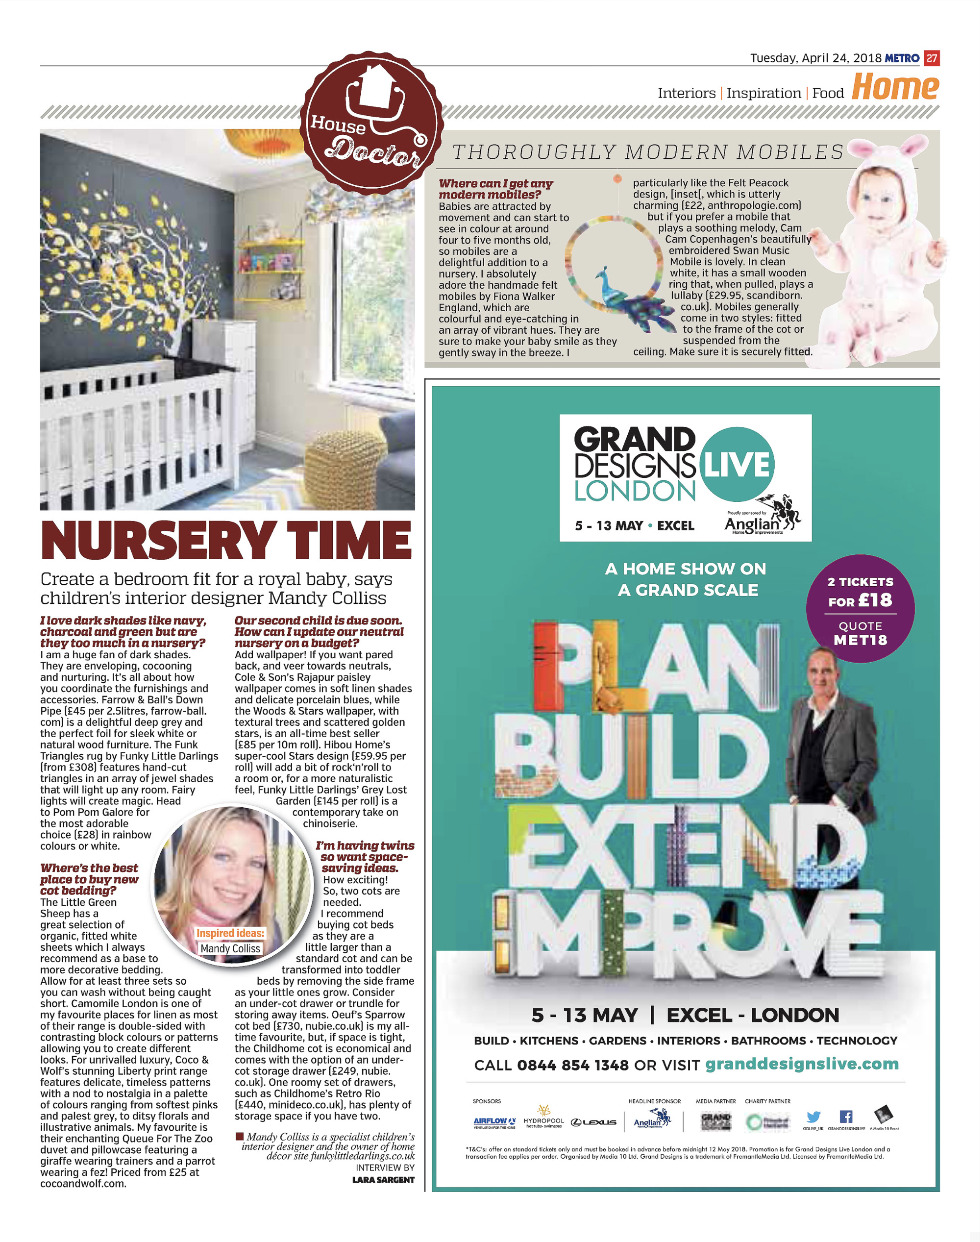 Interview with Mandy Colliss in Metro newspaper, specialist kids interior designer on how to create the perfect nursery and children's bedroom